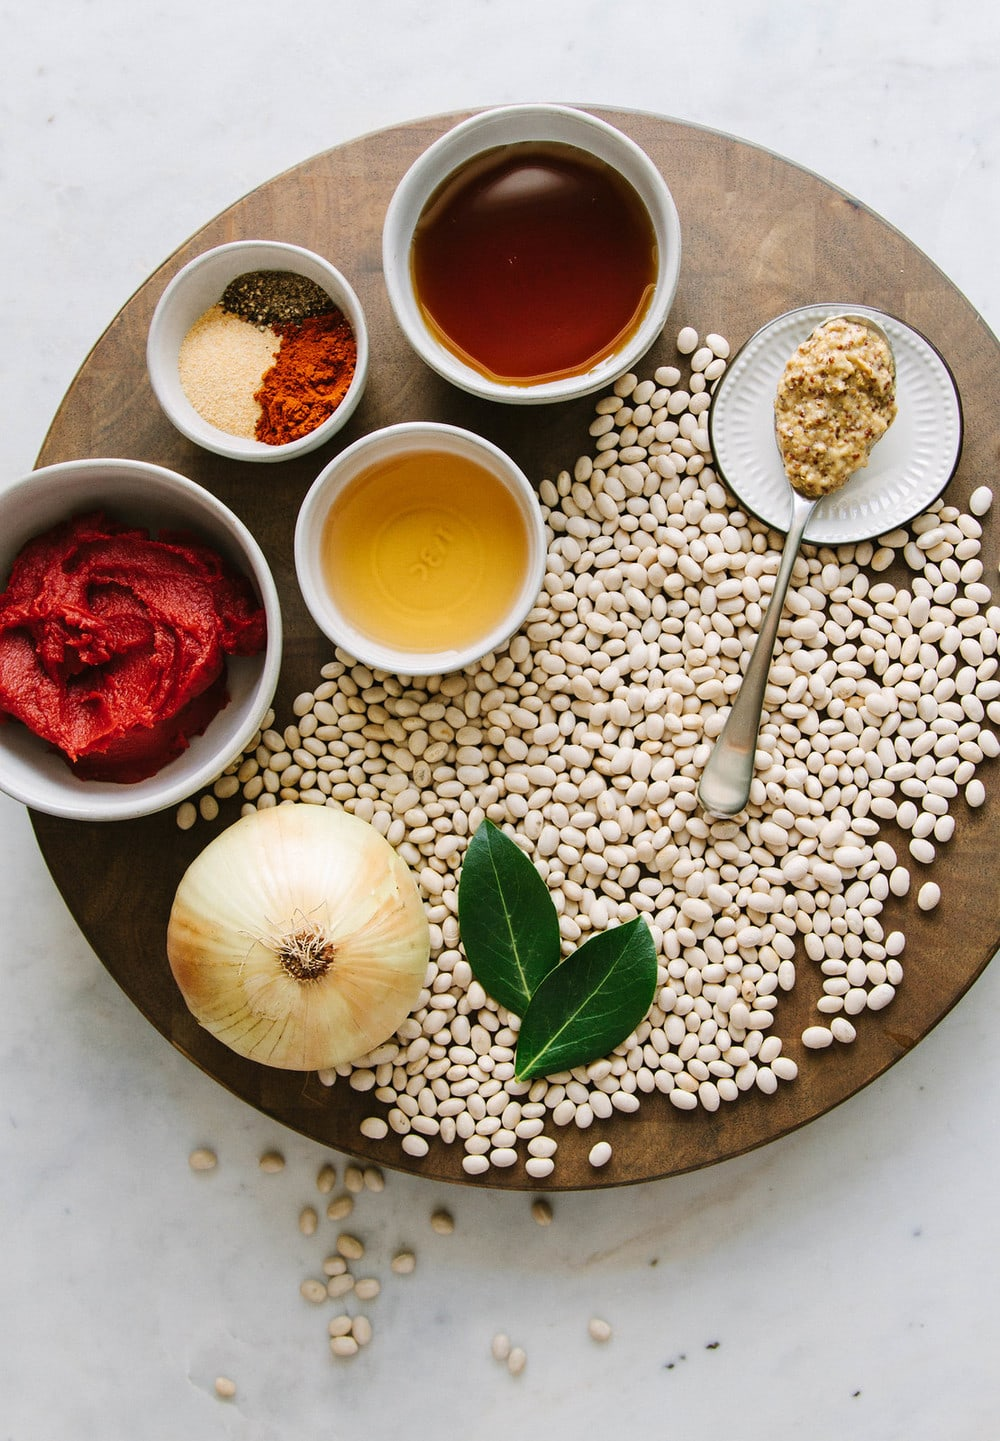 ingredients for baked beans on a circular wooden cutting board